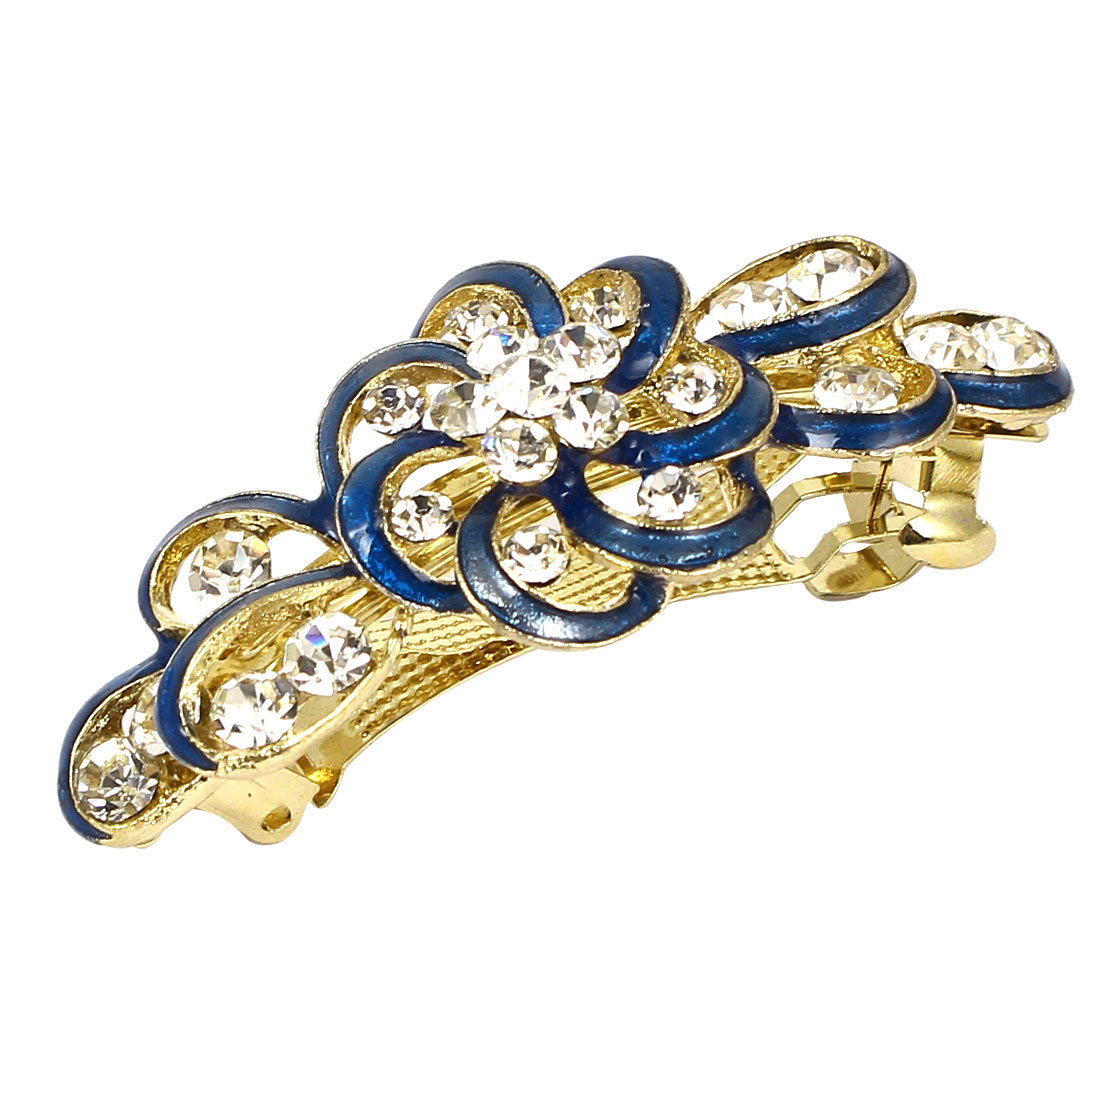 Lady Plastic Rhinestone Decor Flower Design French Barrette Hair Clip Gold Tone Light Blue